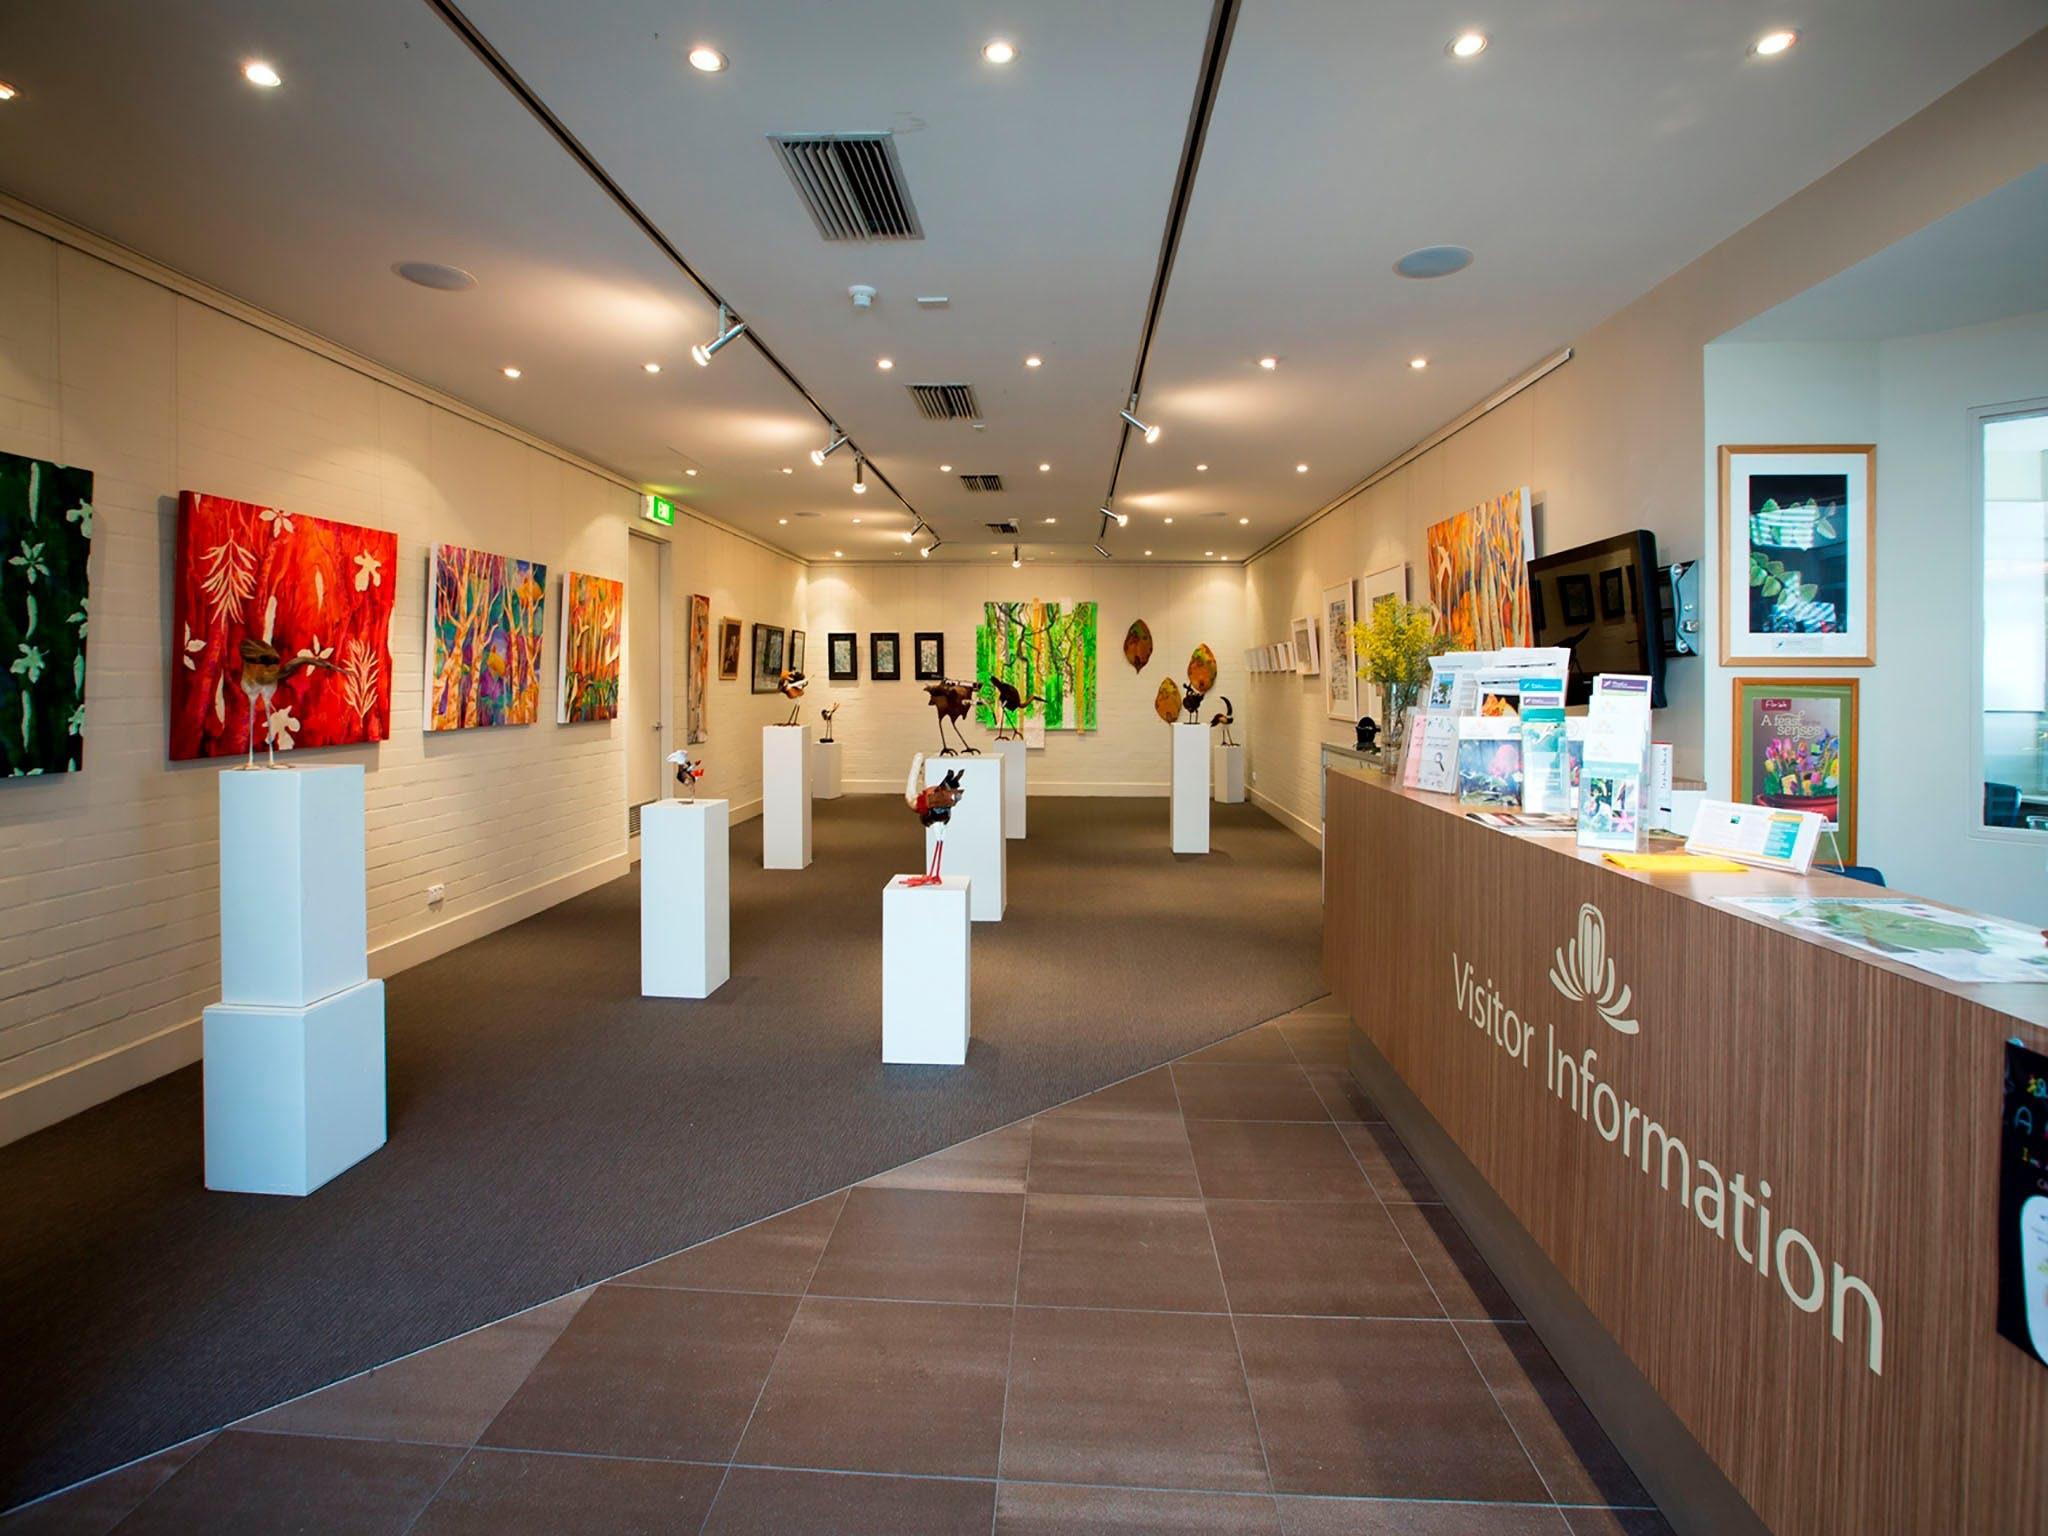 Australian National Botanic Gardens Visitor Centre Gallery - Attractions